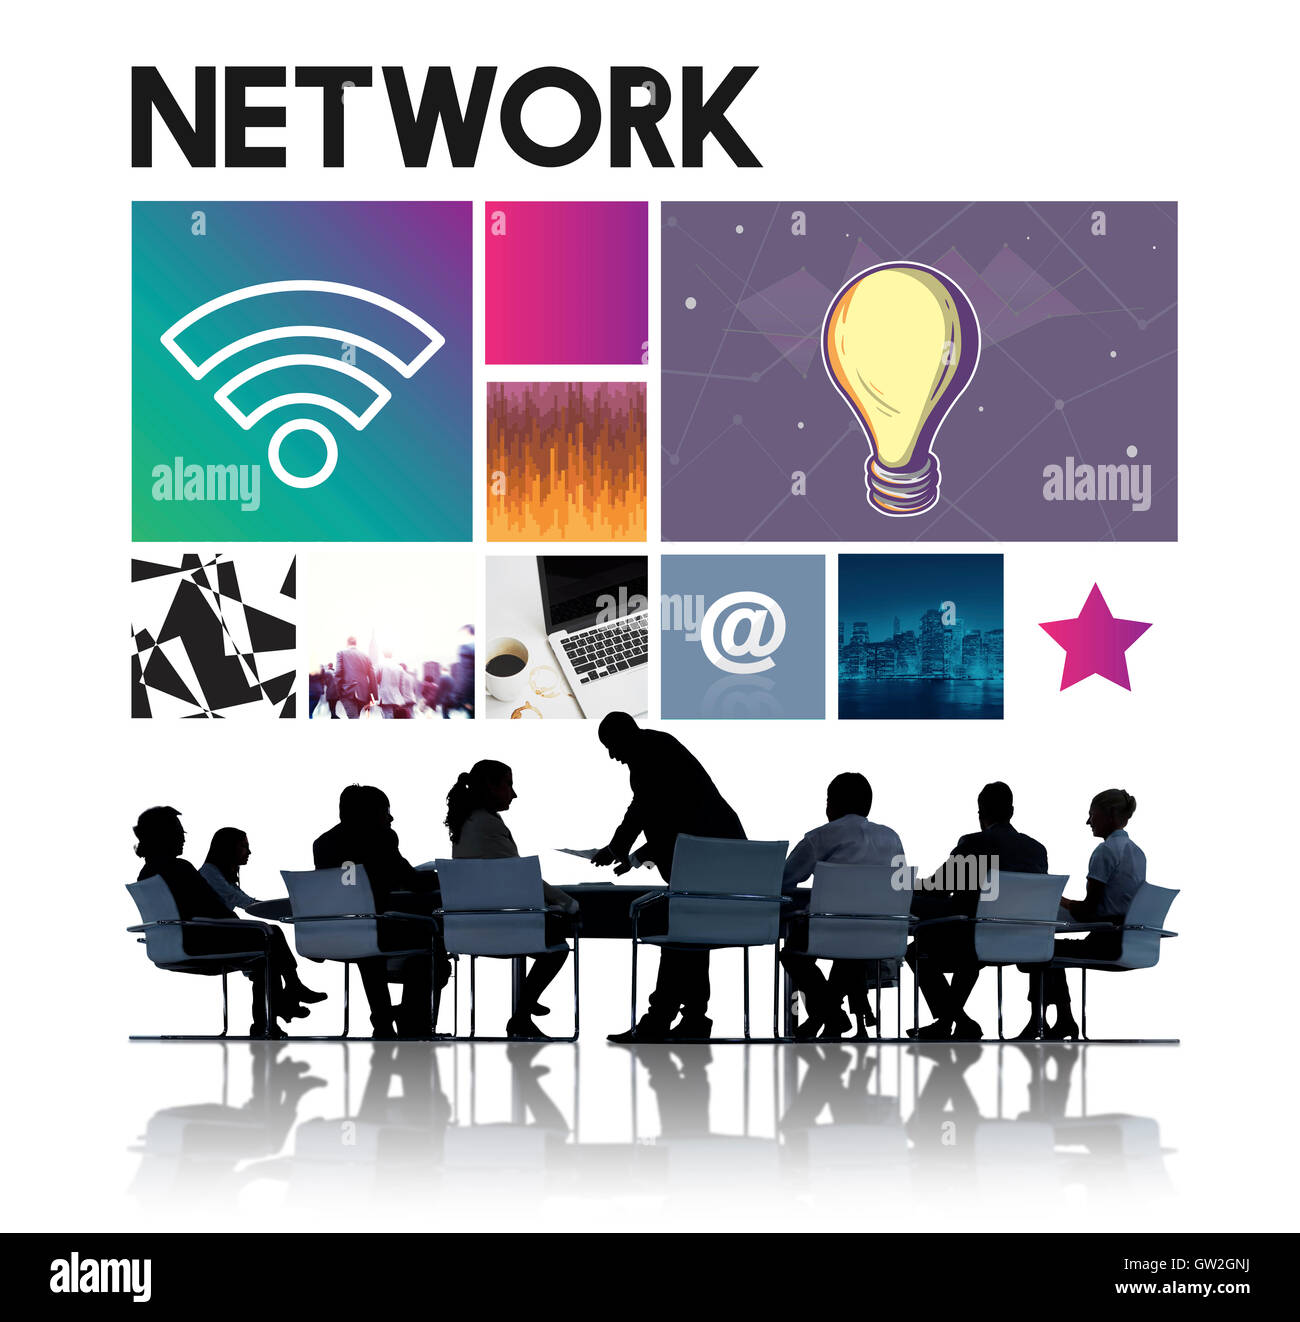 Network Technology Cyberspace Concept - Stock Image